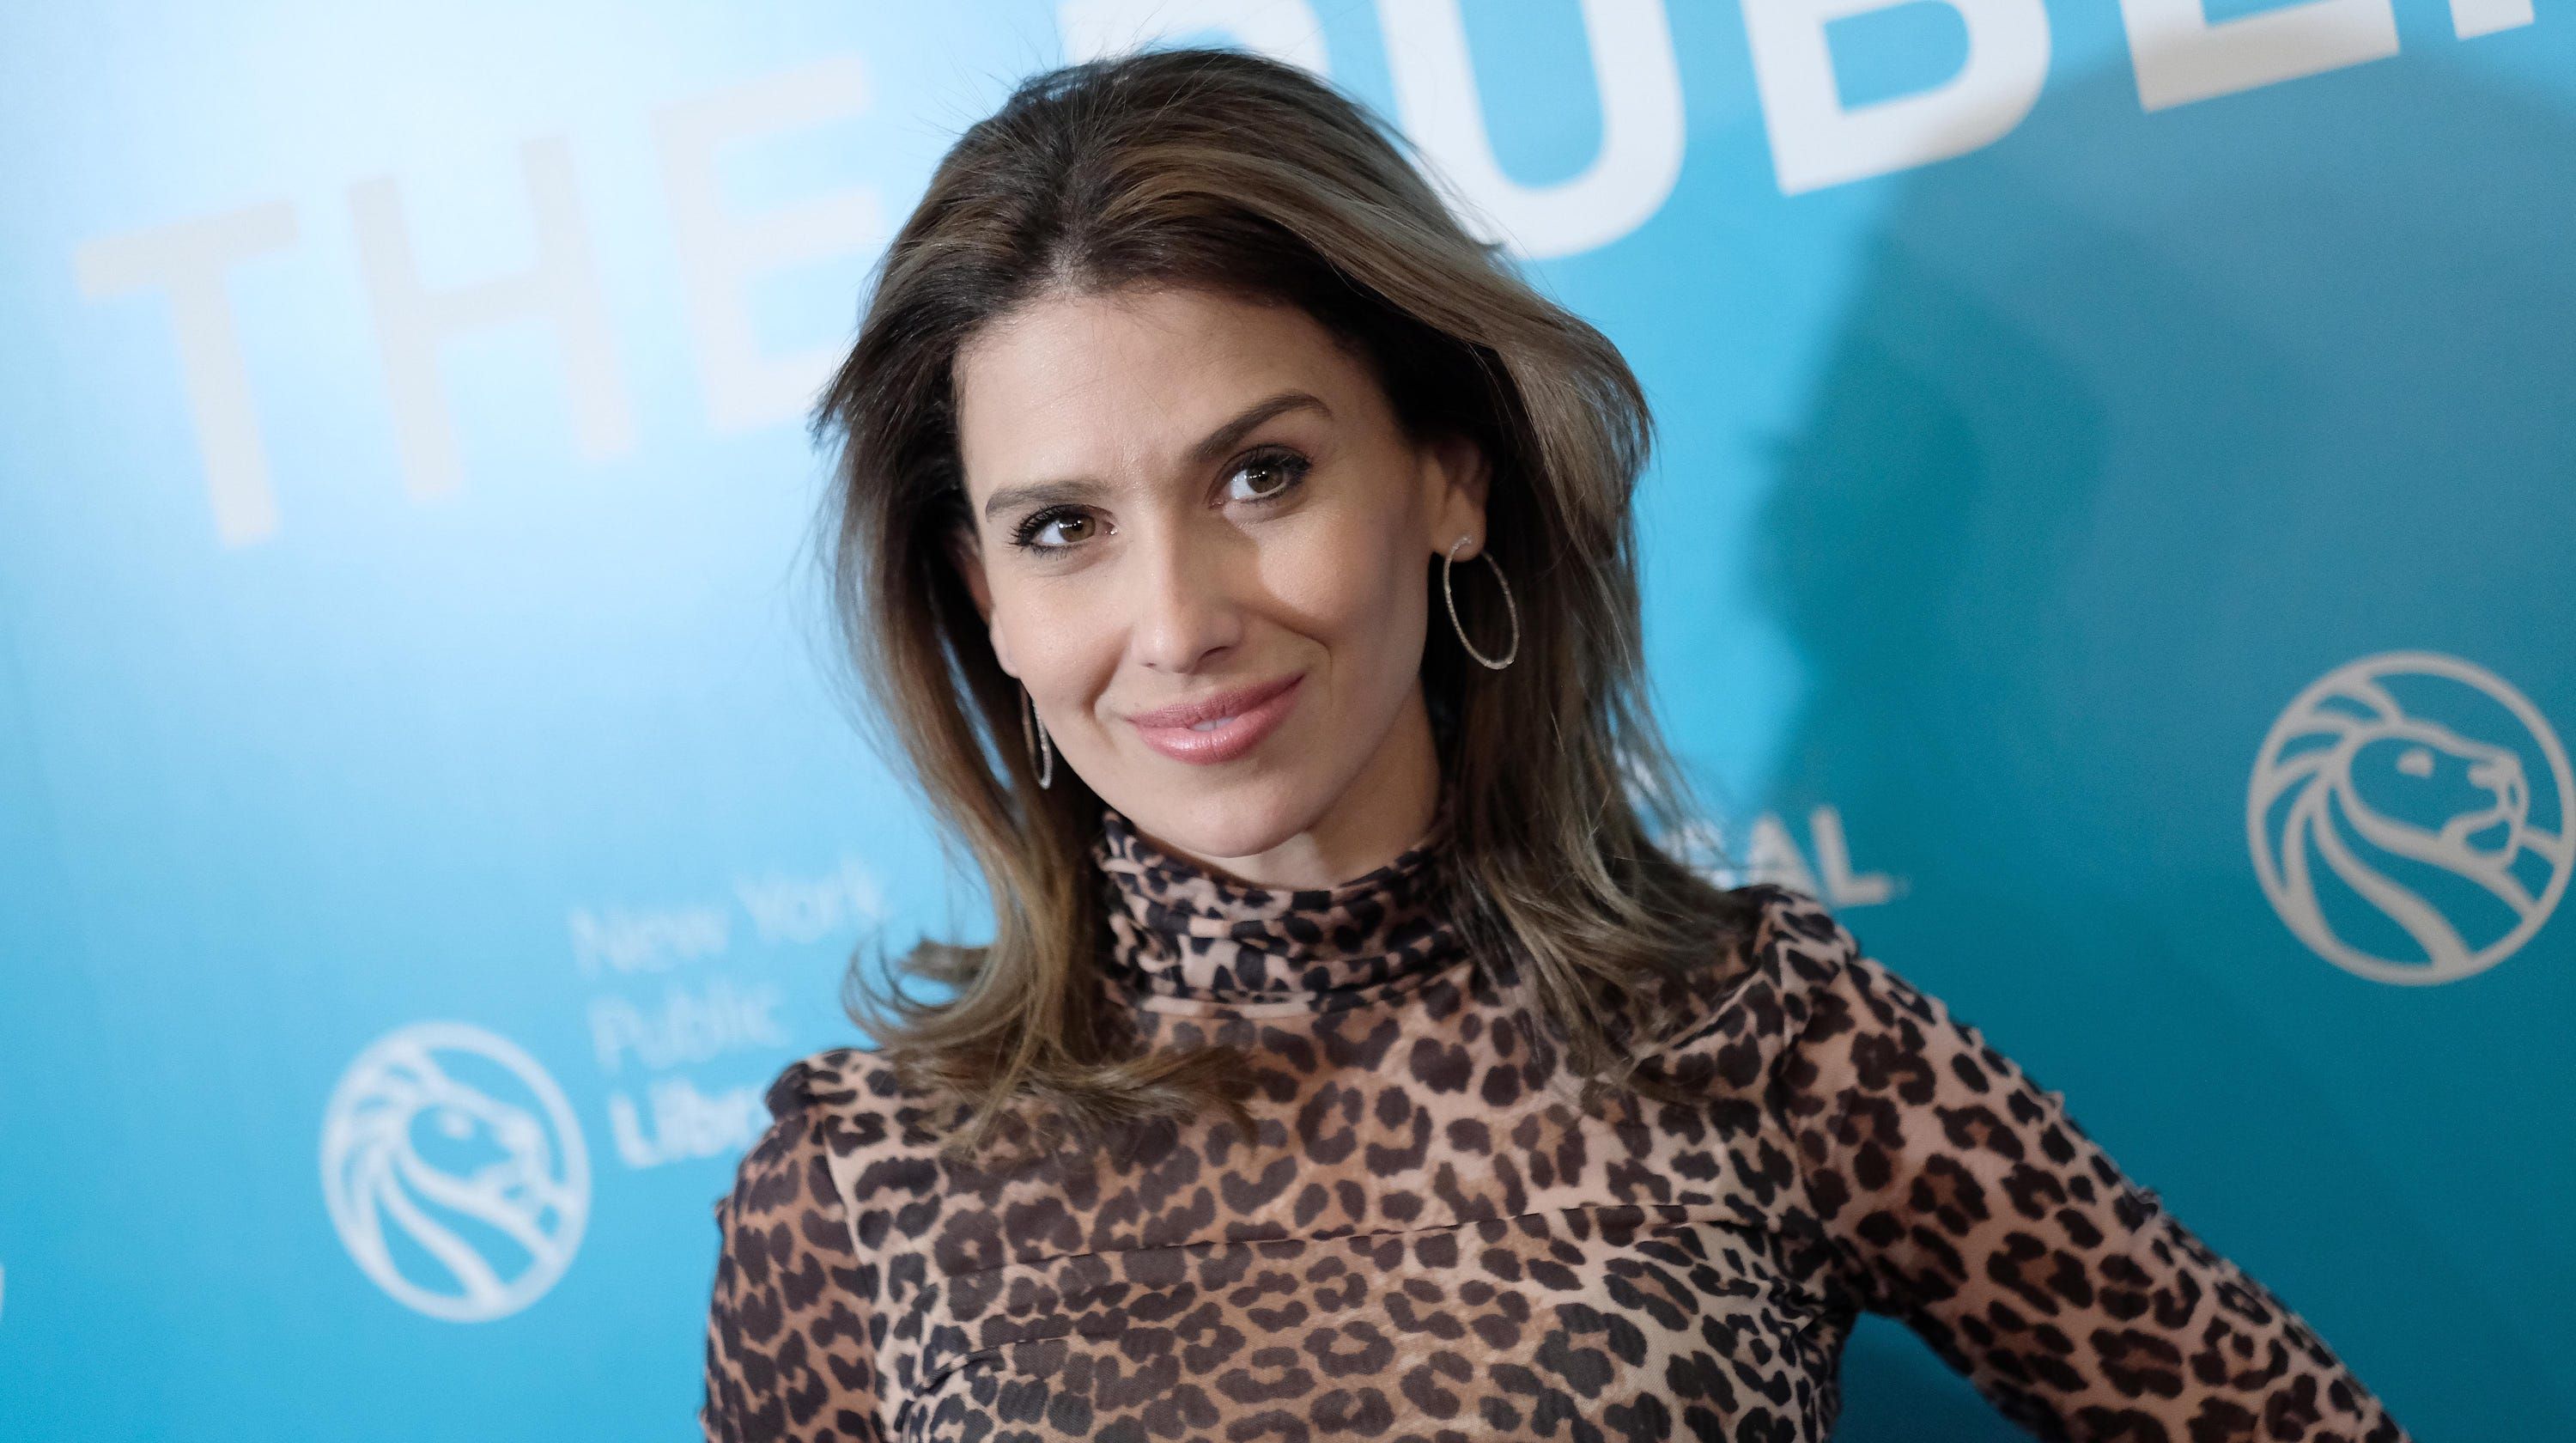 Hilaria Baldwin fires back at critic who called her 'annoying' for sharing miscarriage news